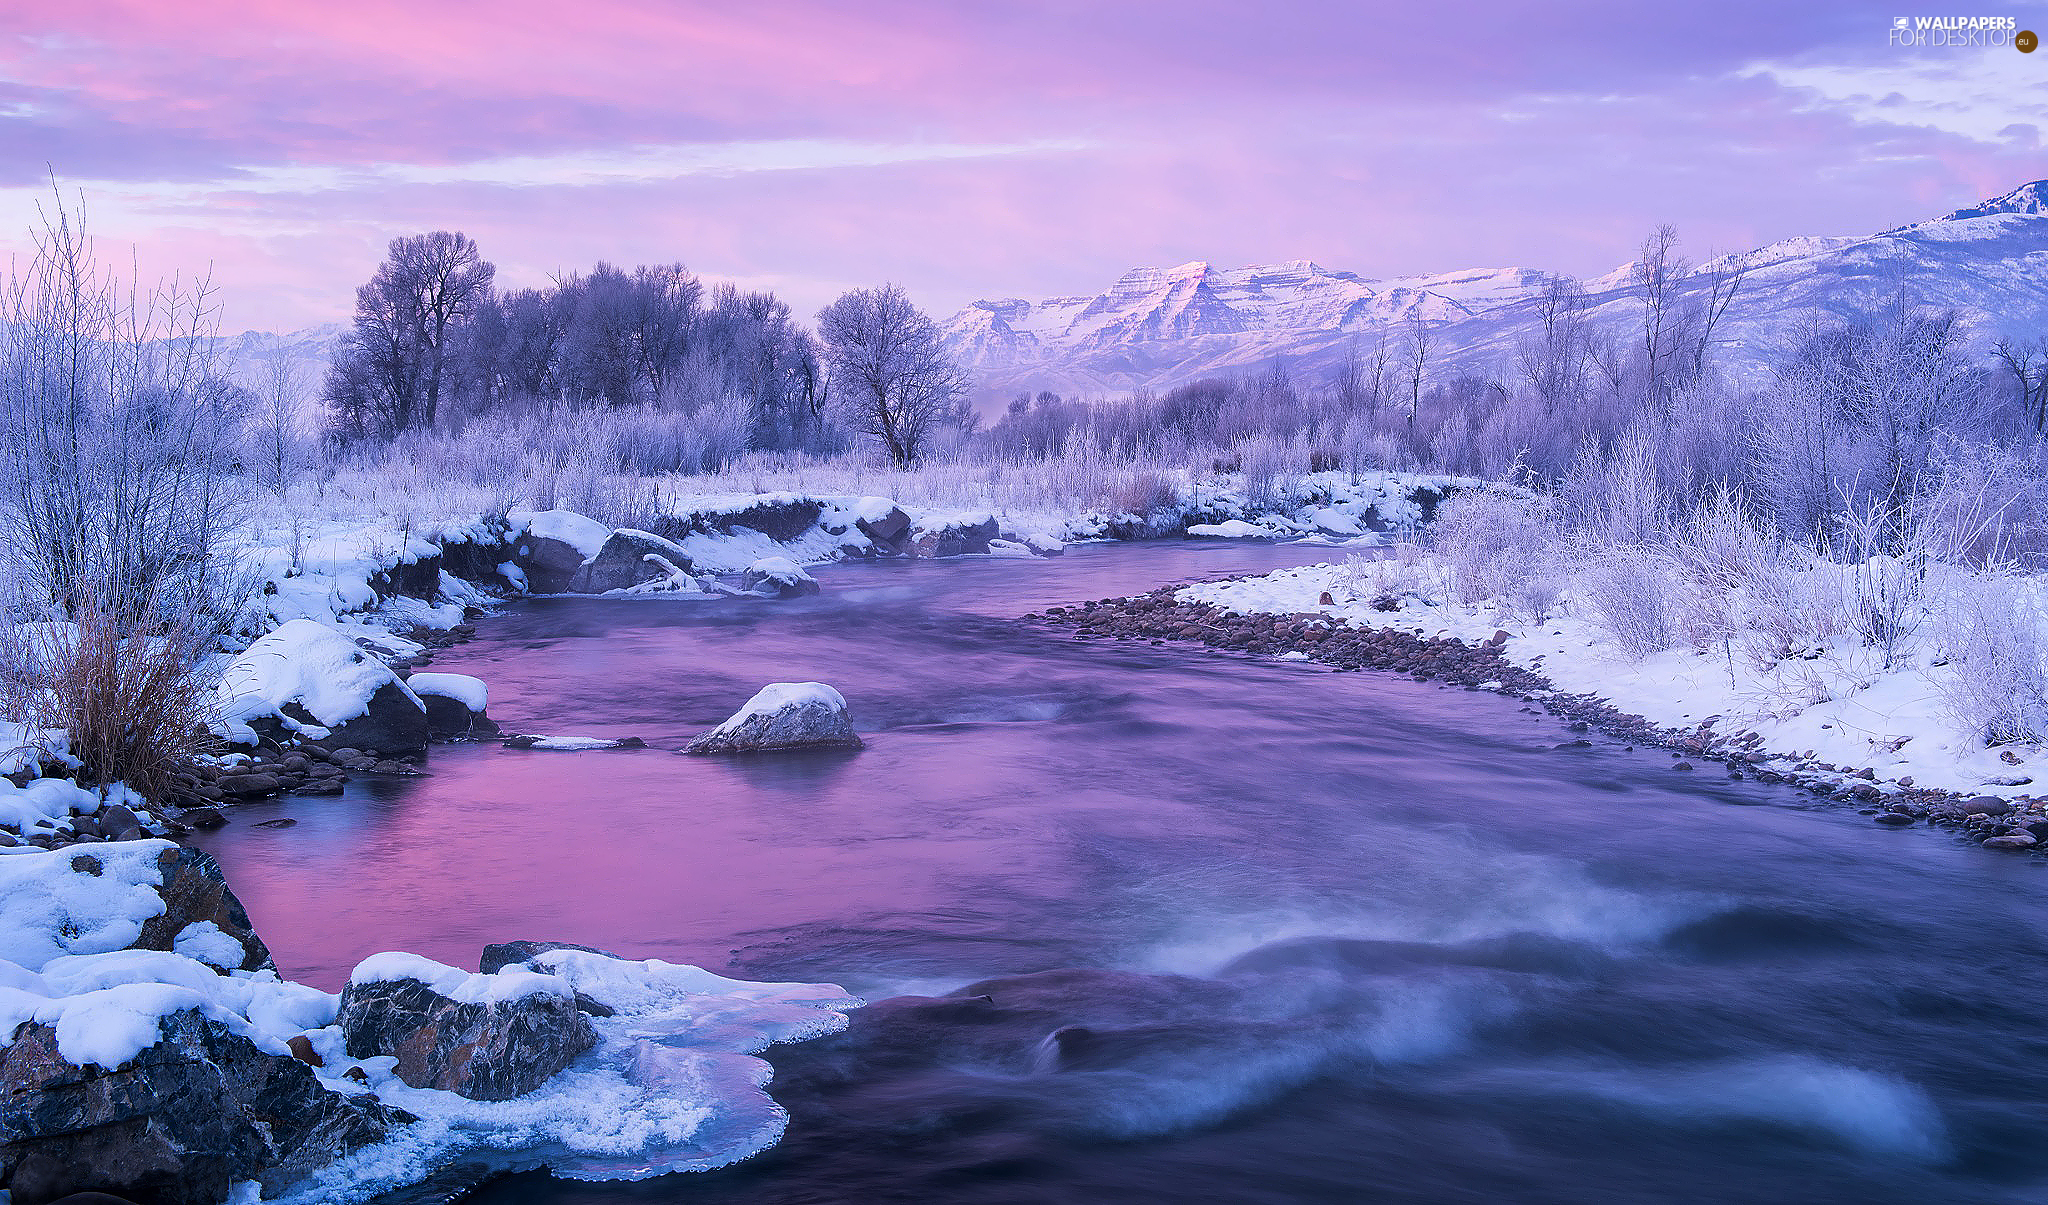 River, winter, viewes, Great Sunsets, trees, snow